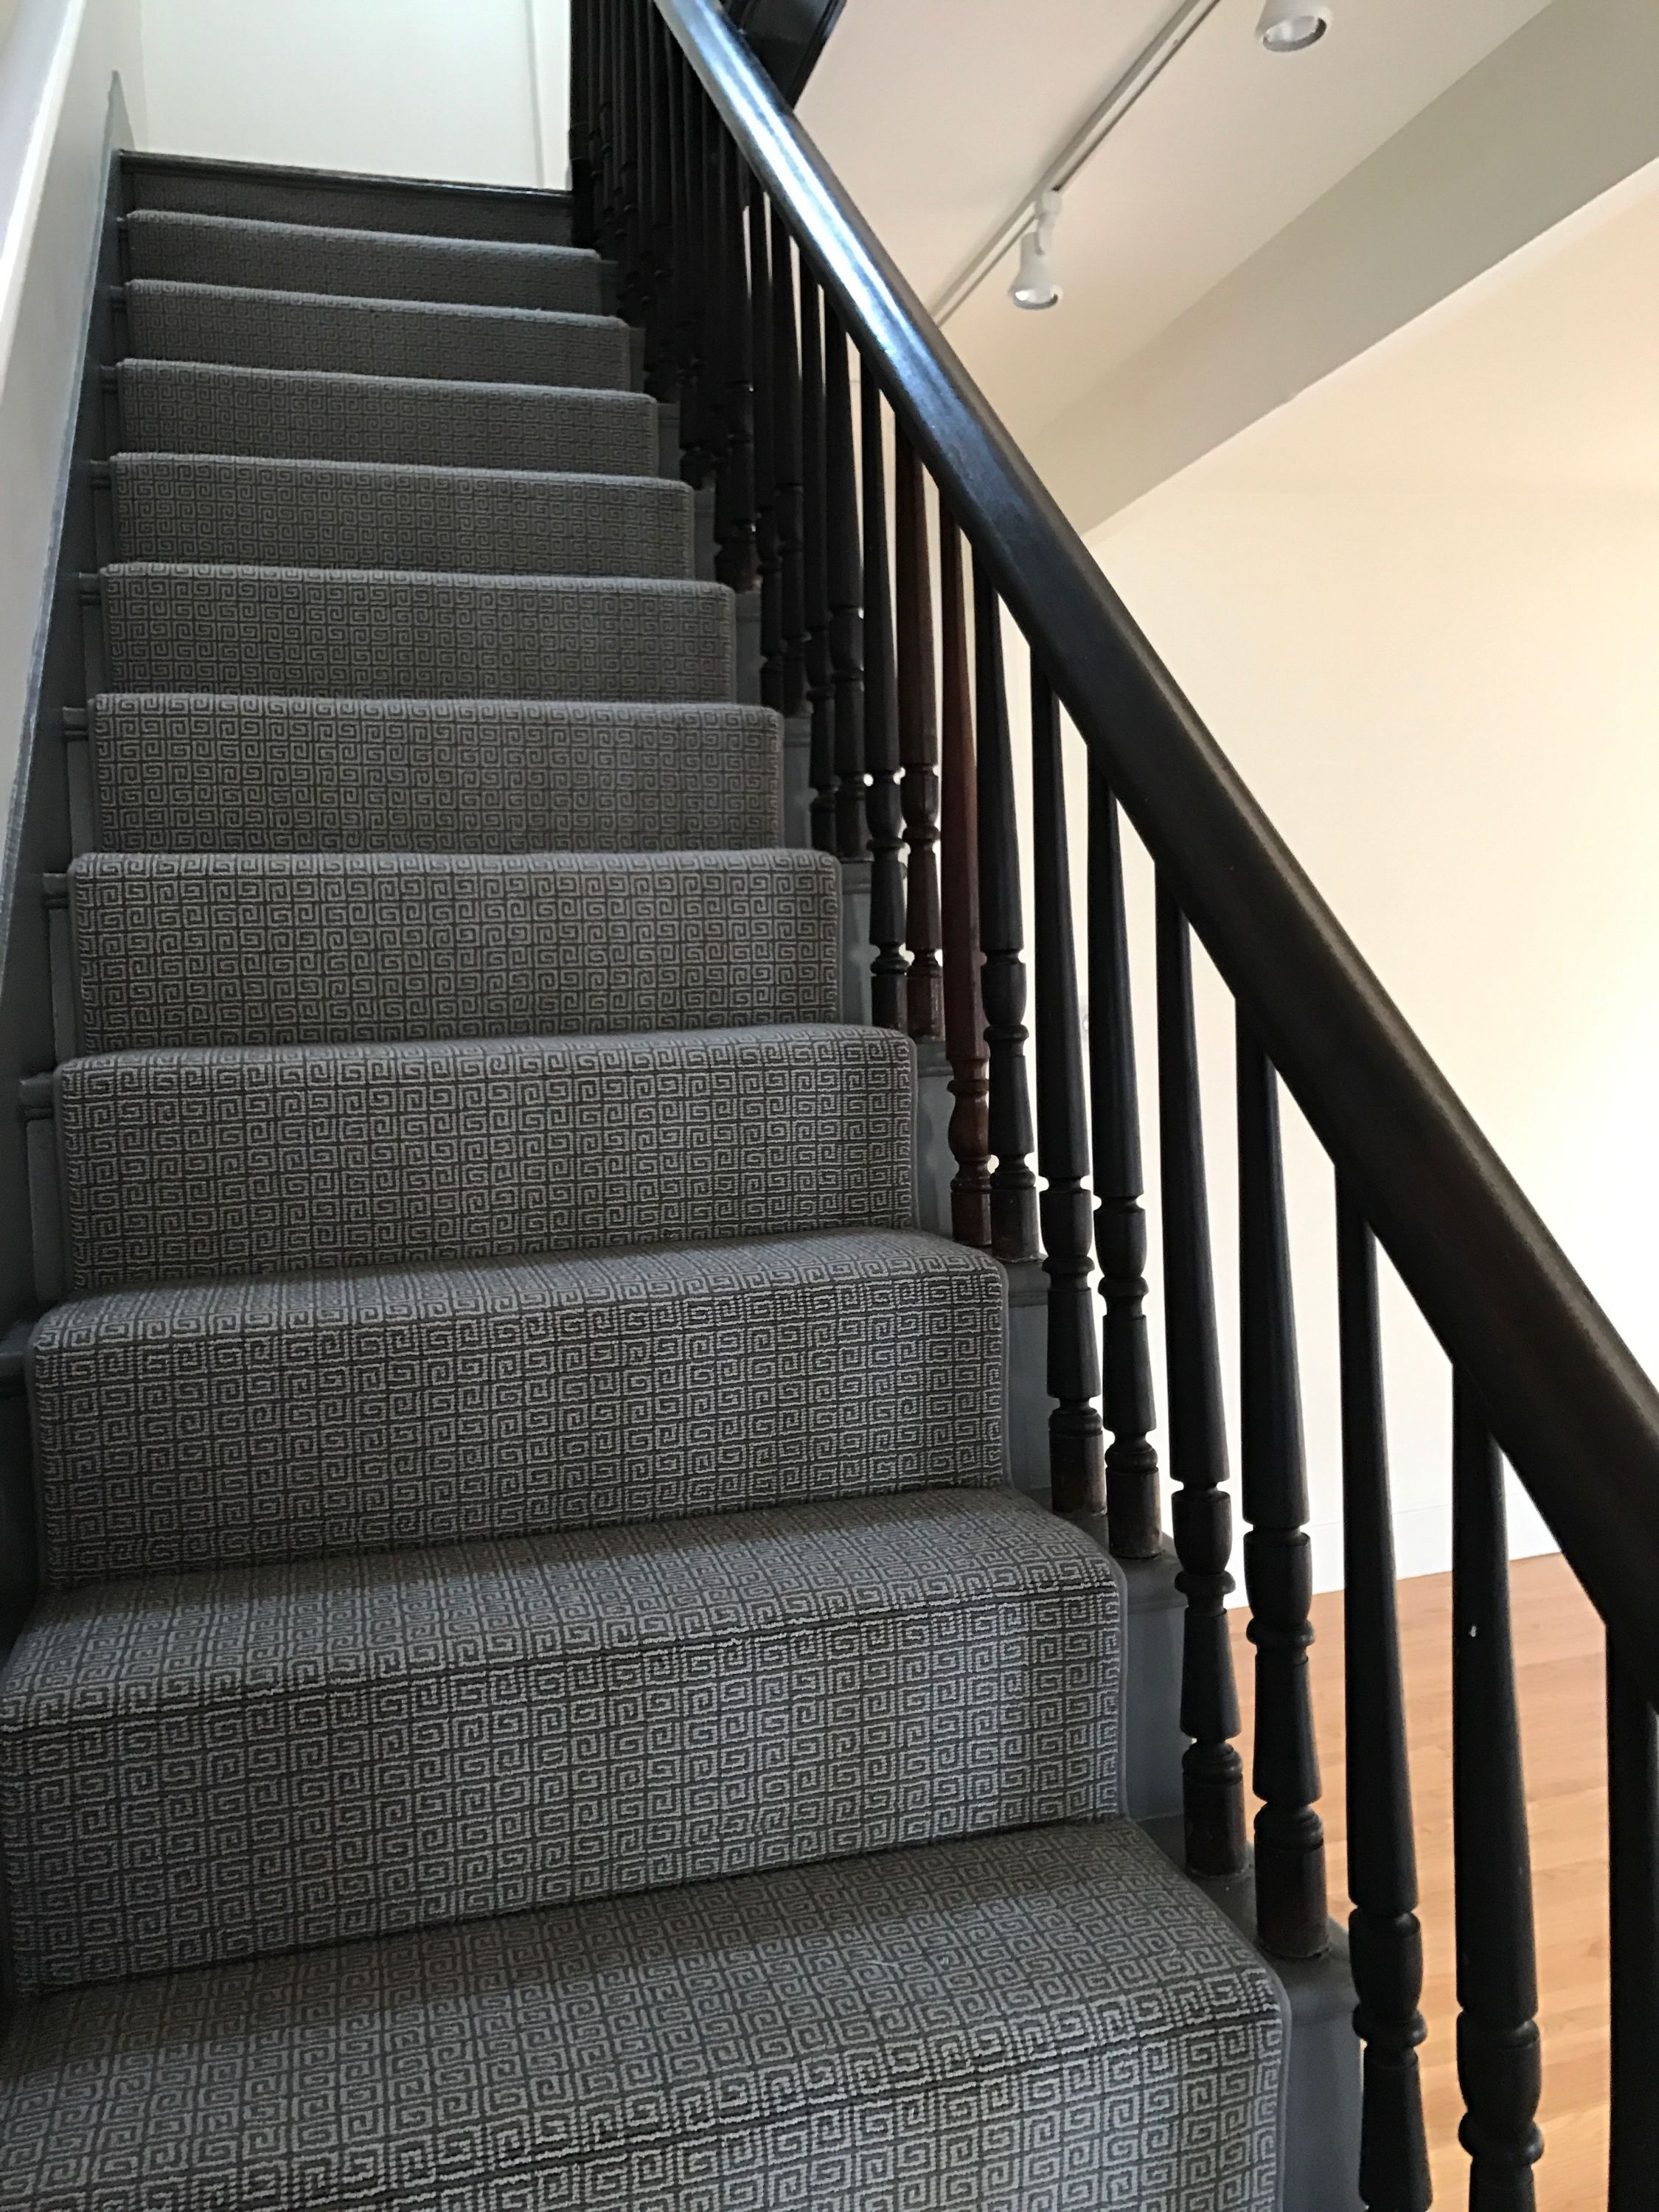 This @bloomsburgusa stair runner we installed looks beautiful on top of these gray stairs! When designing your stair runner project, there are many design decisions to make. Let us help you decide how much wood you'd like to show, how you want the material to fall, or recommend a binding accent color that will help make your choice pop.  Email a photo of your space to info@carpetworkroom.com for a free estimate or fill out a custom carpet order